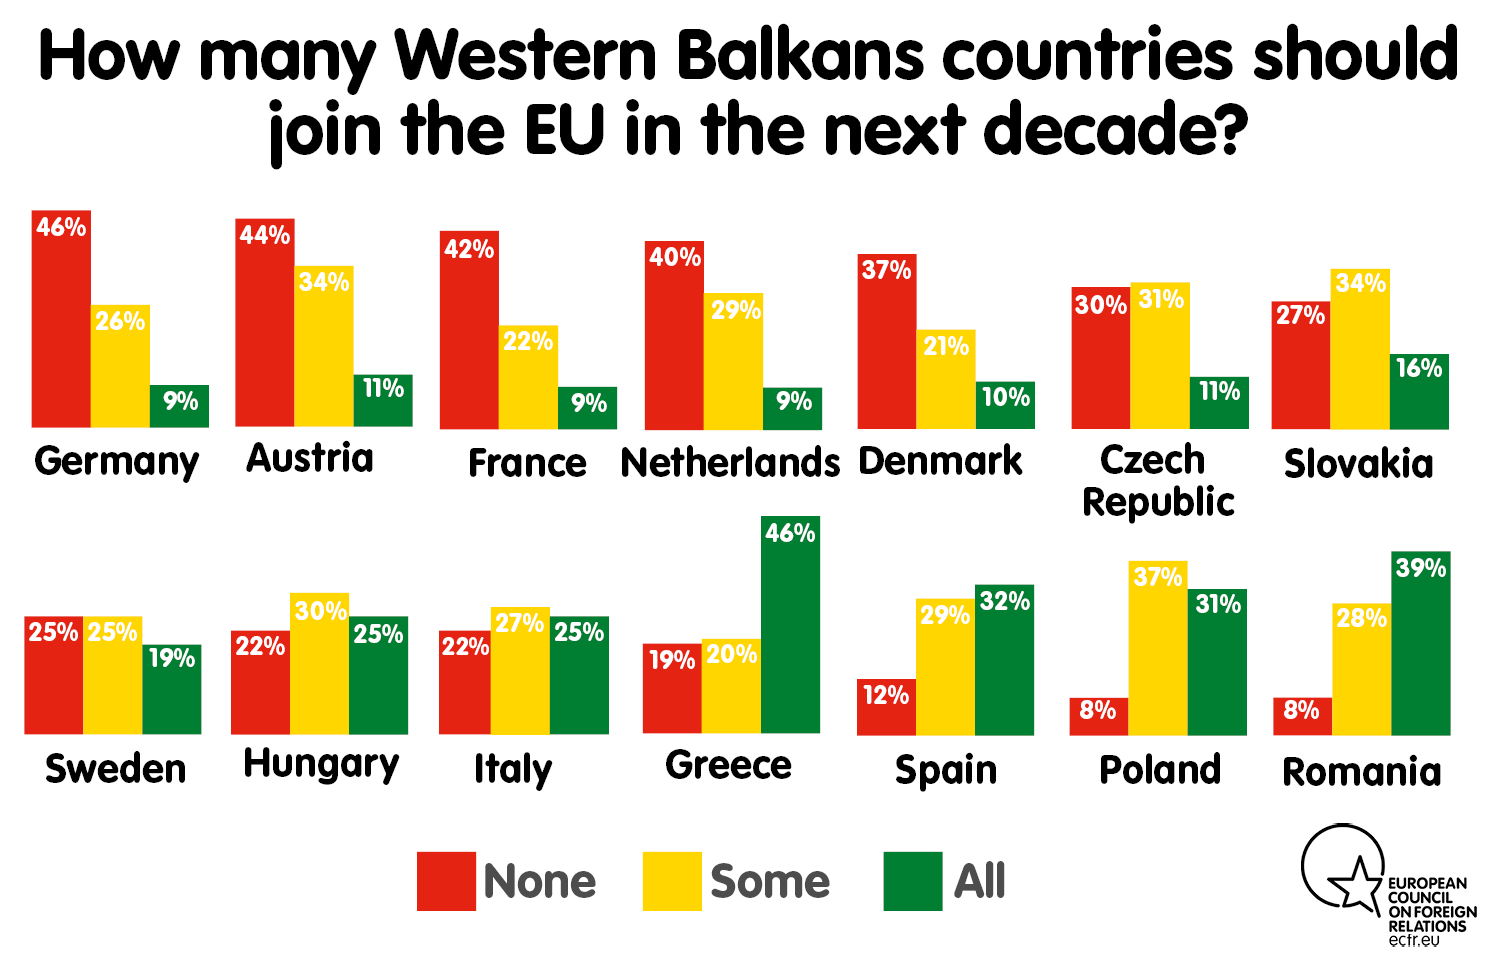 How many Western Balkans countries should join the EU in the next decade?